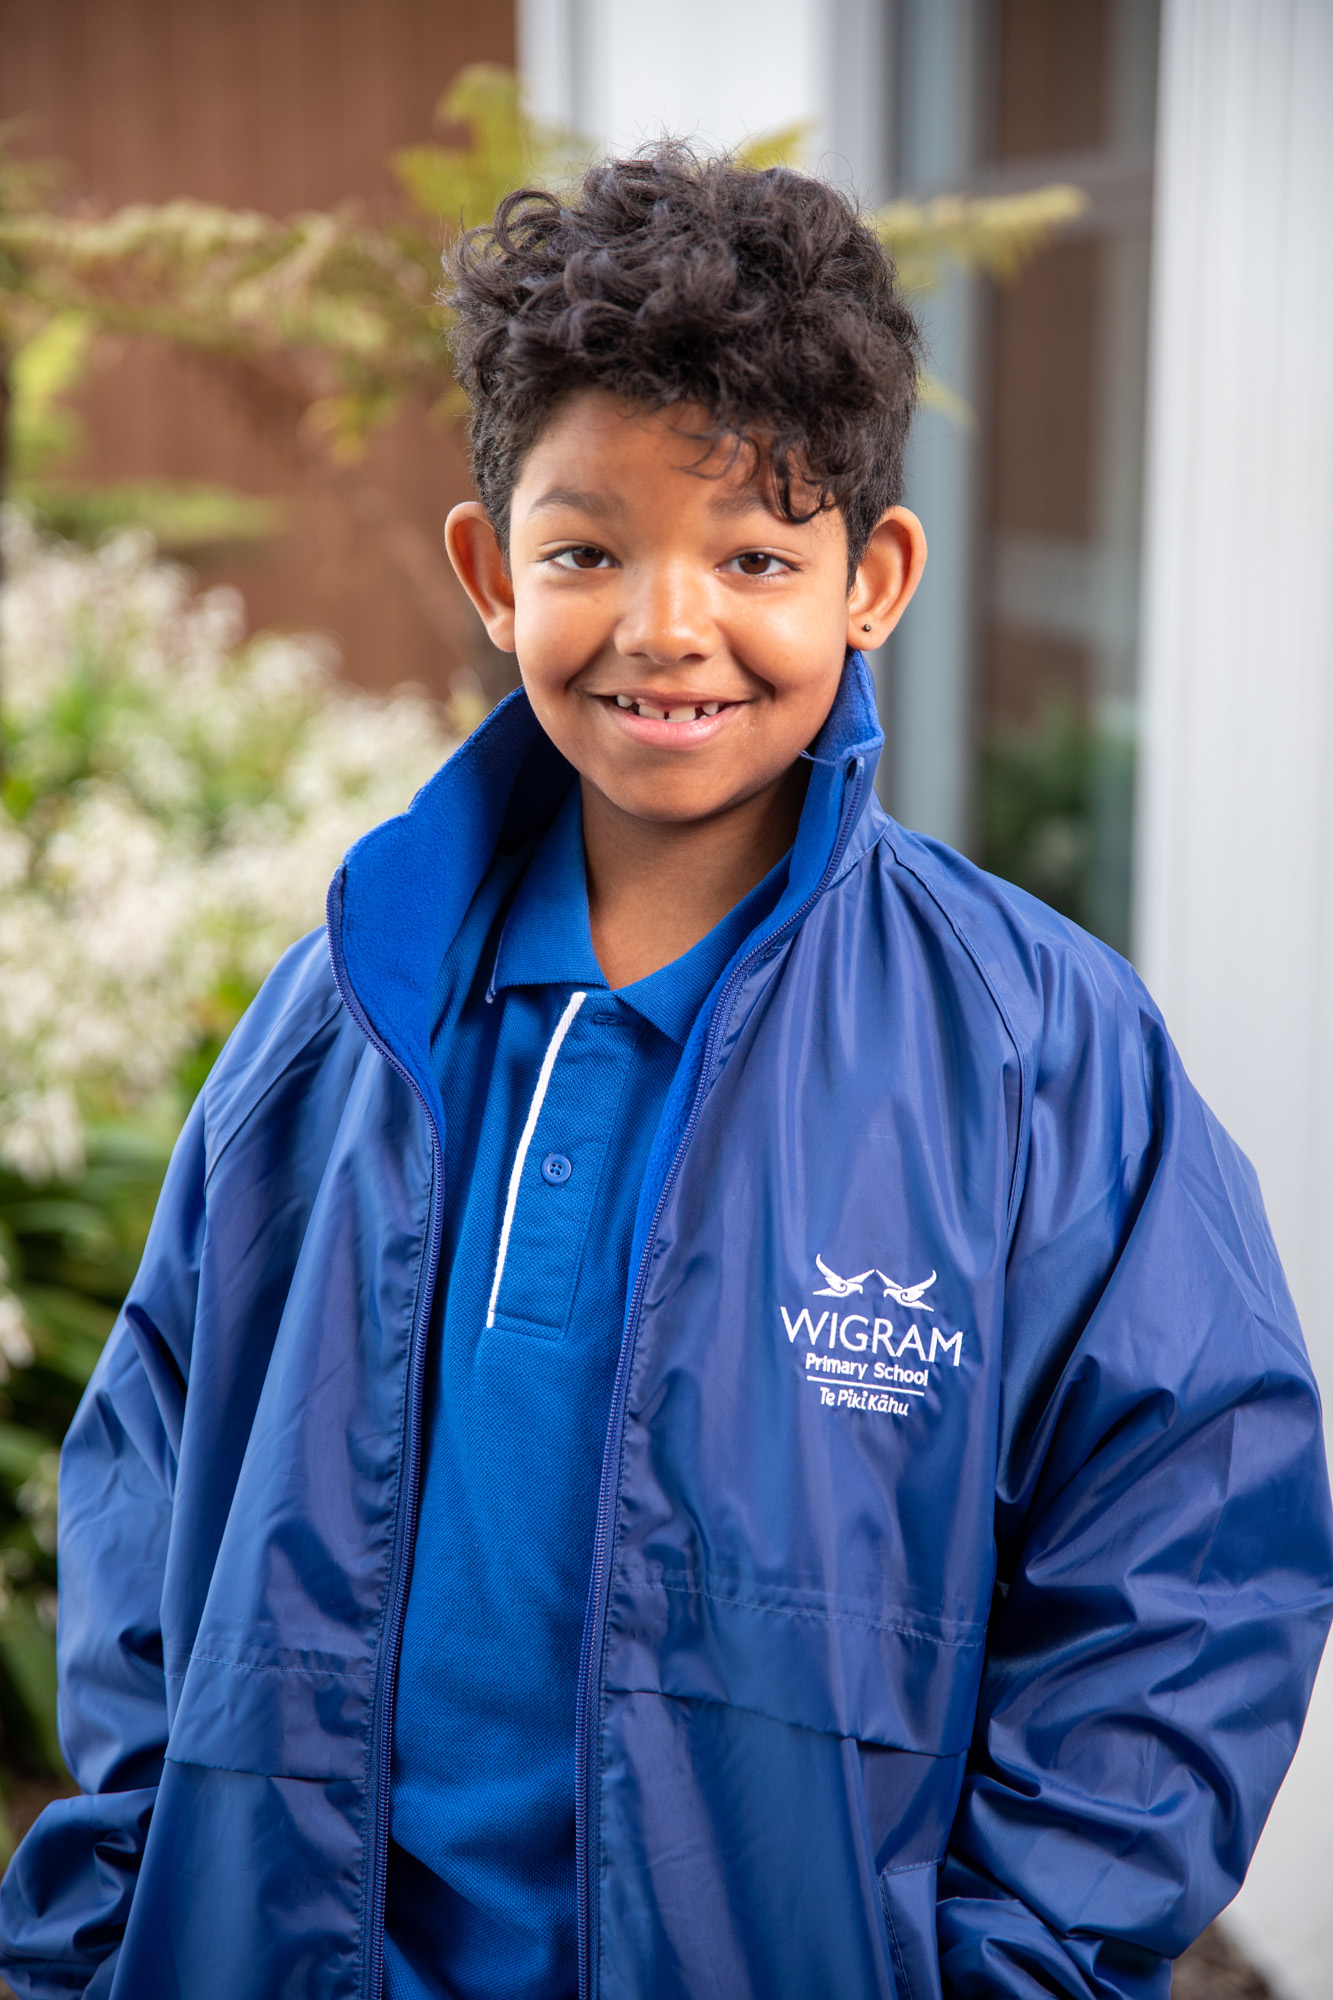 young male in blue shirt and jacket